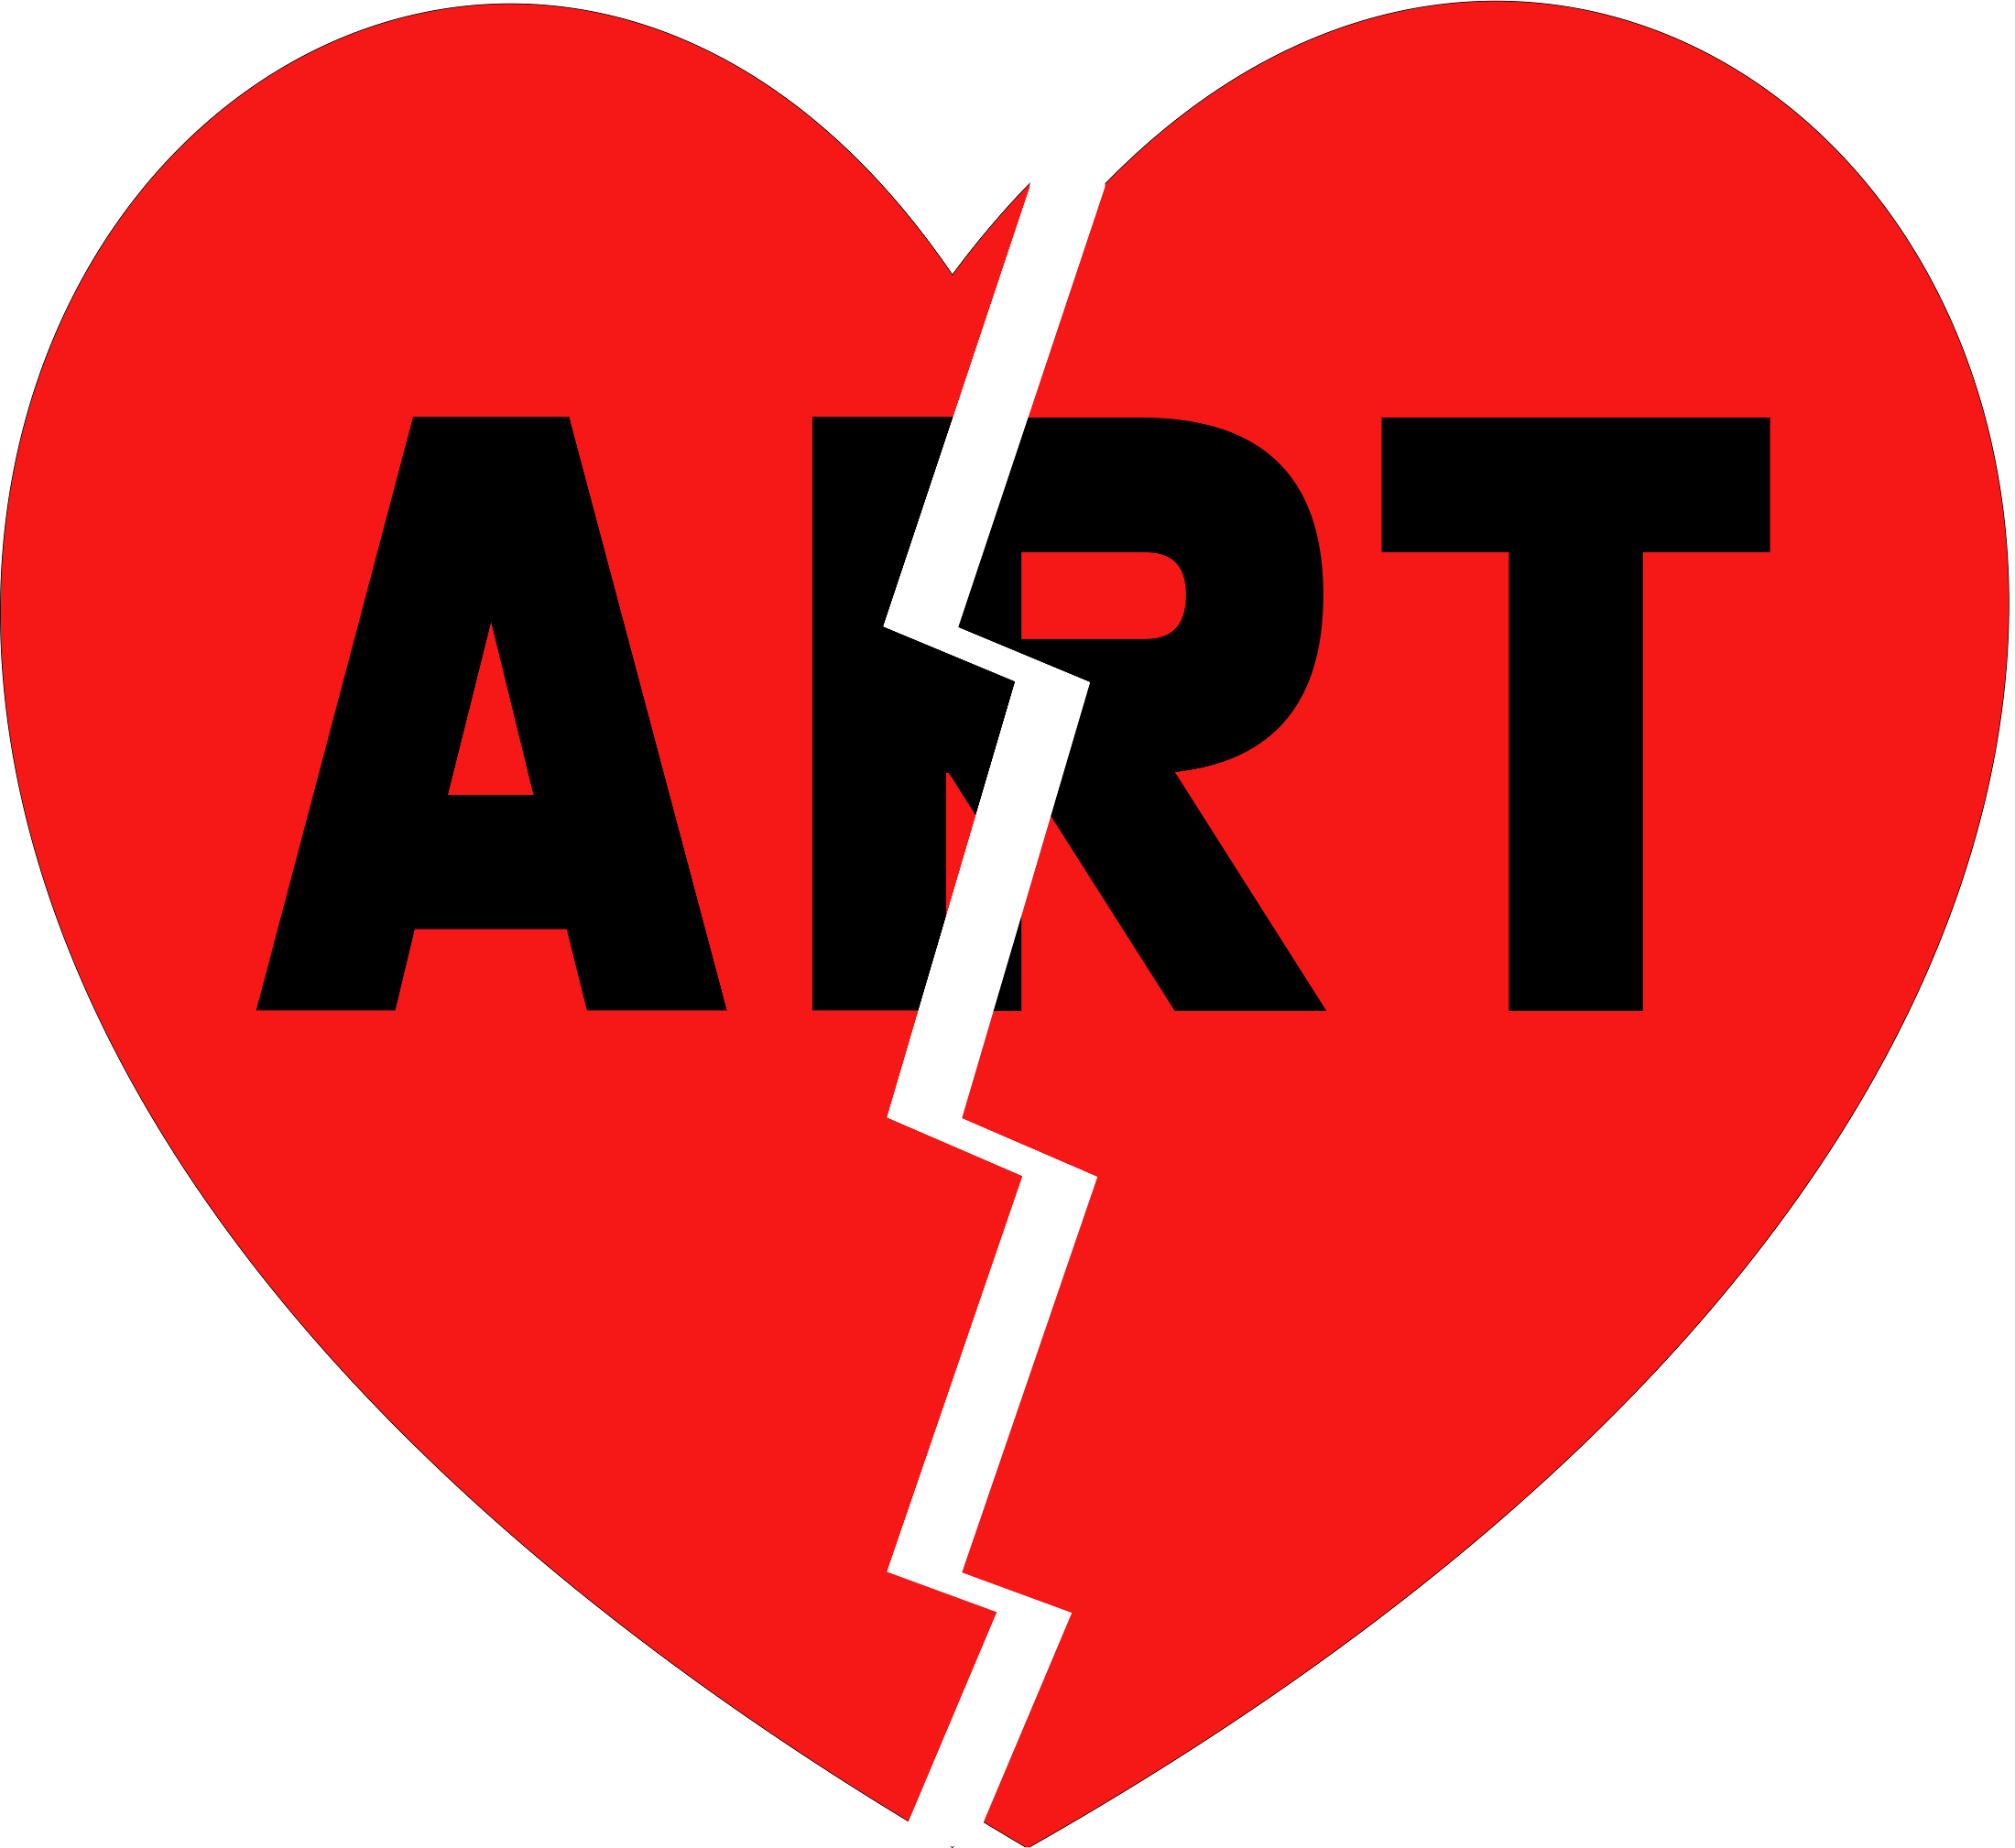 Money heart breaking clipart stock UNIT/PITT Projects | Difficult. stock